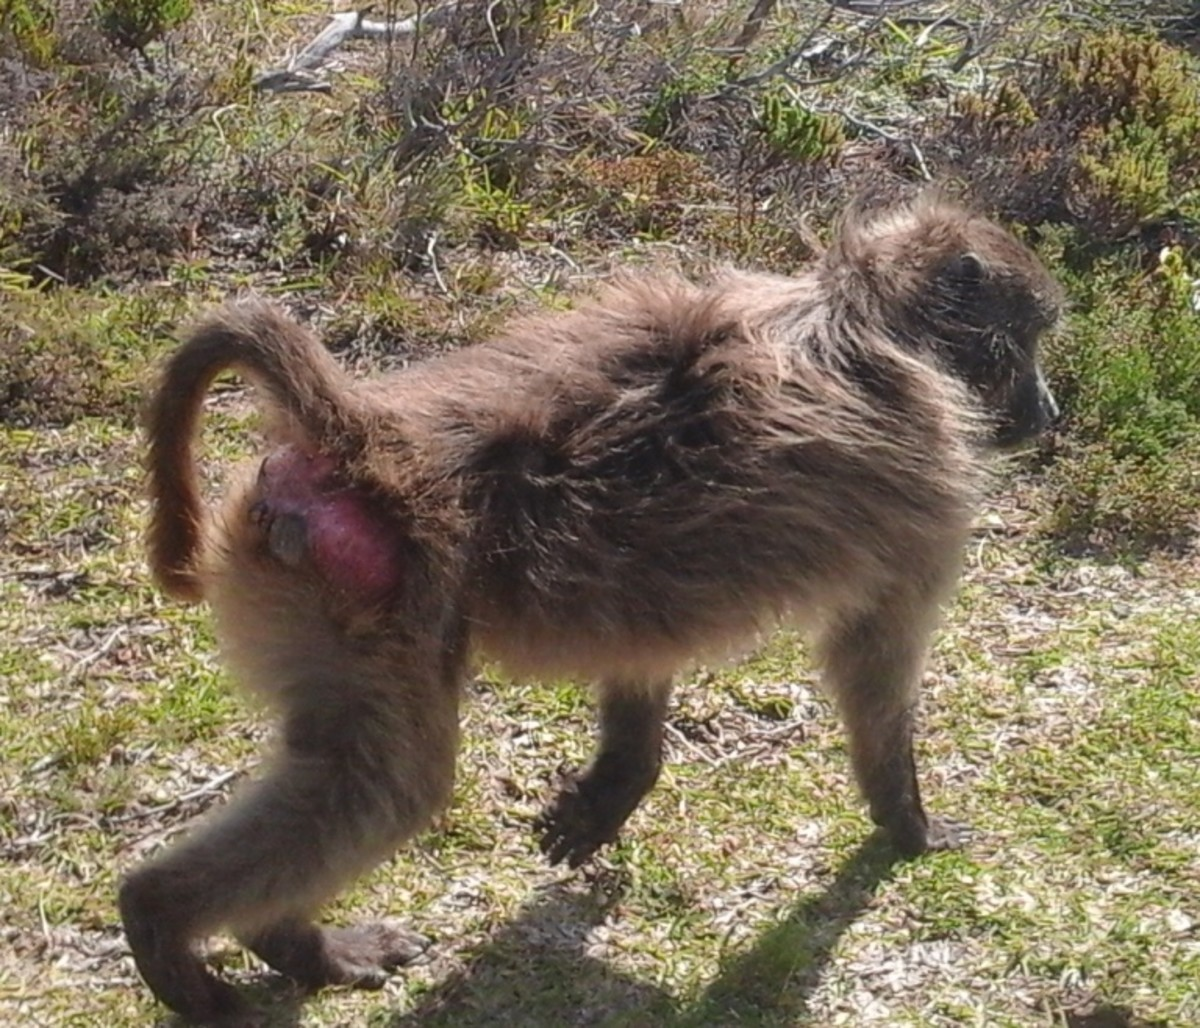 The Cape baboon